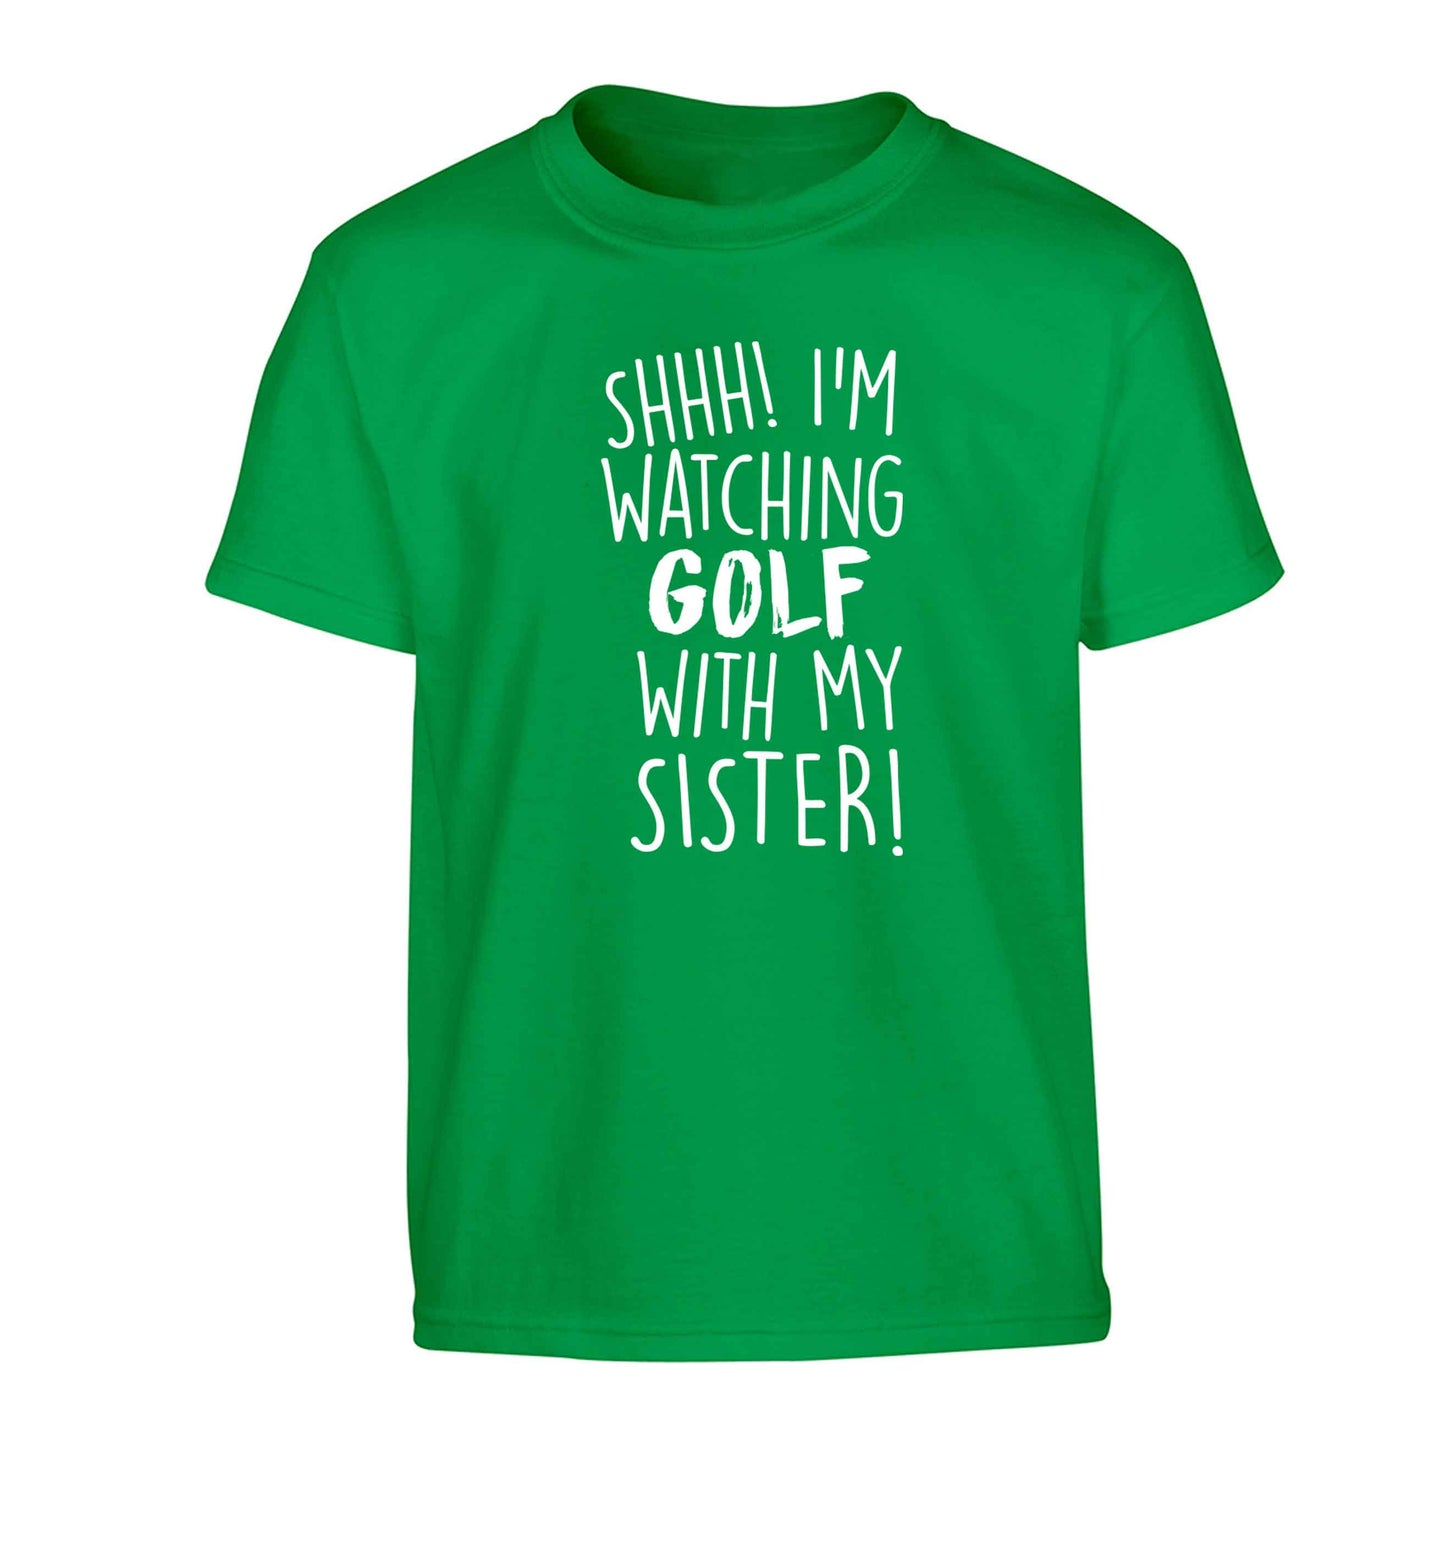 Shh I'm watching golf with my sister Children's green Tshirt 12-13 Years